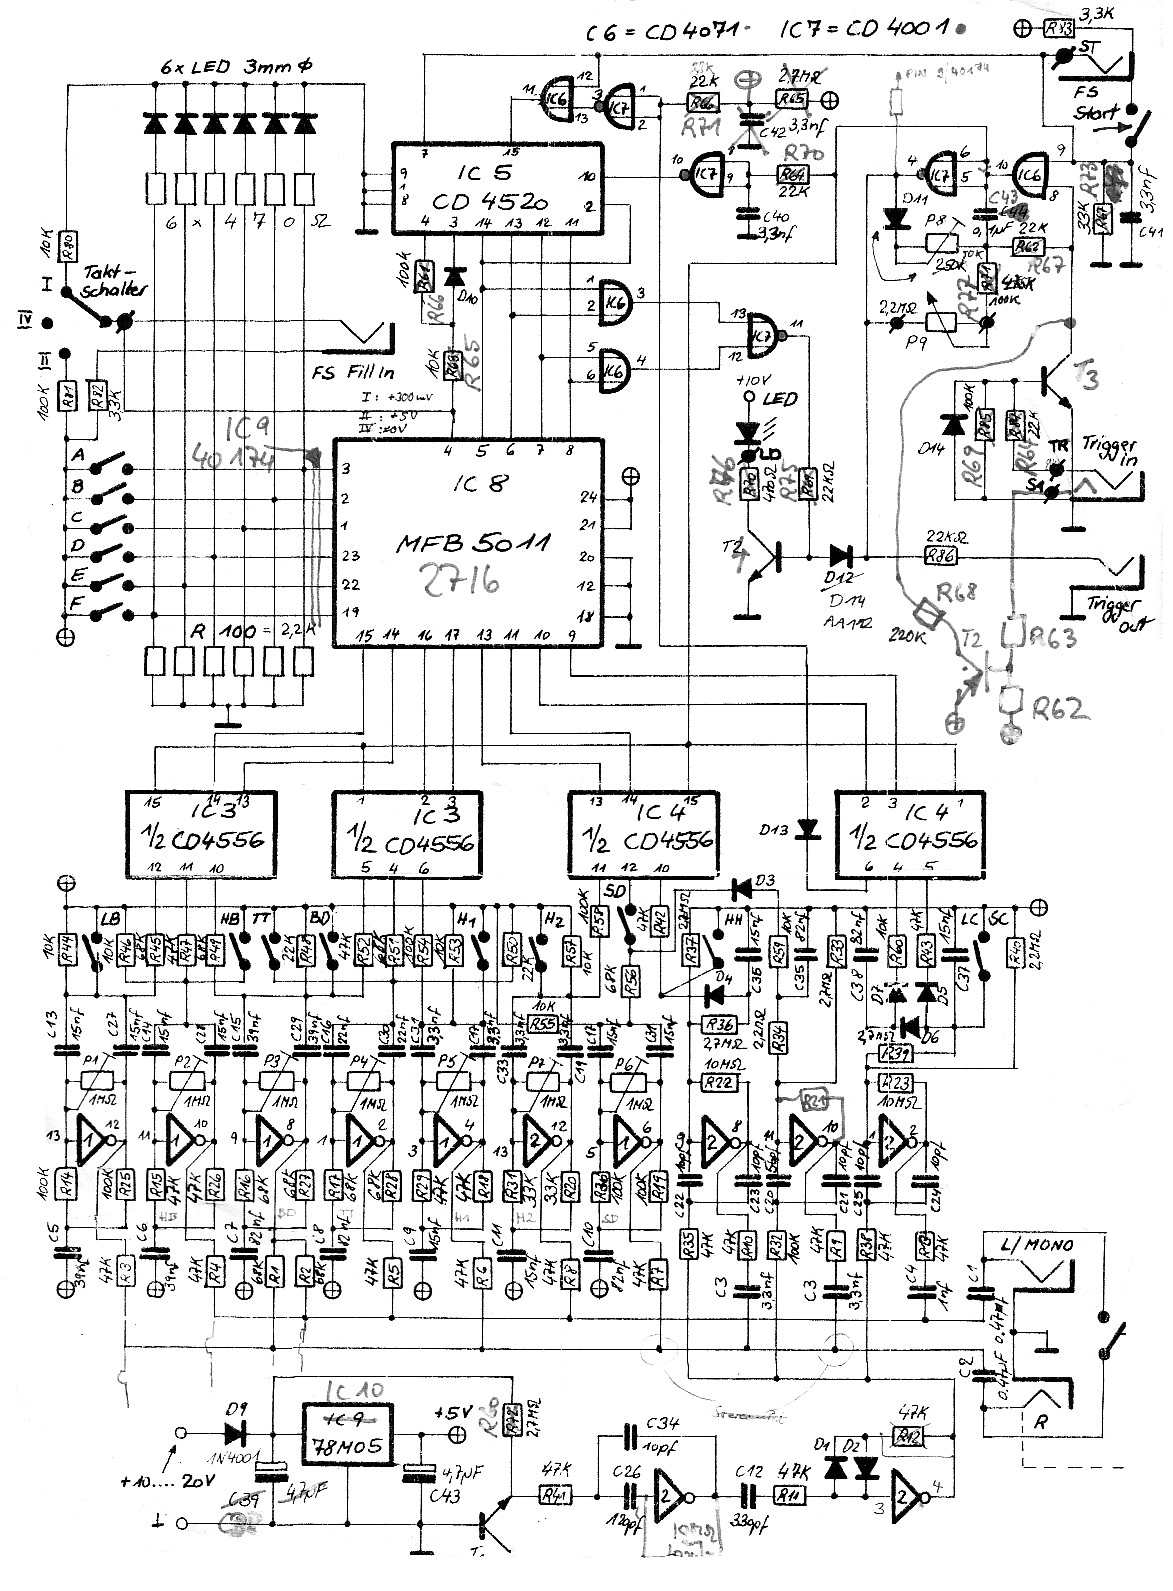 Synthesizer Service Manuals Free Download Diagram As Well Electronic Circuit Diagrams On Yamaha Generator